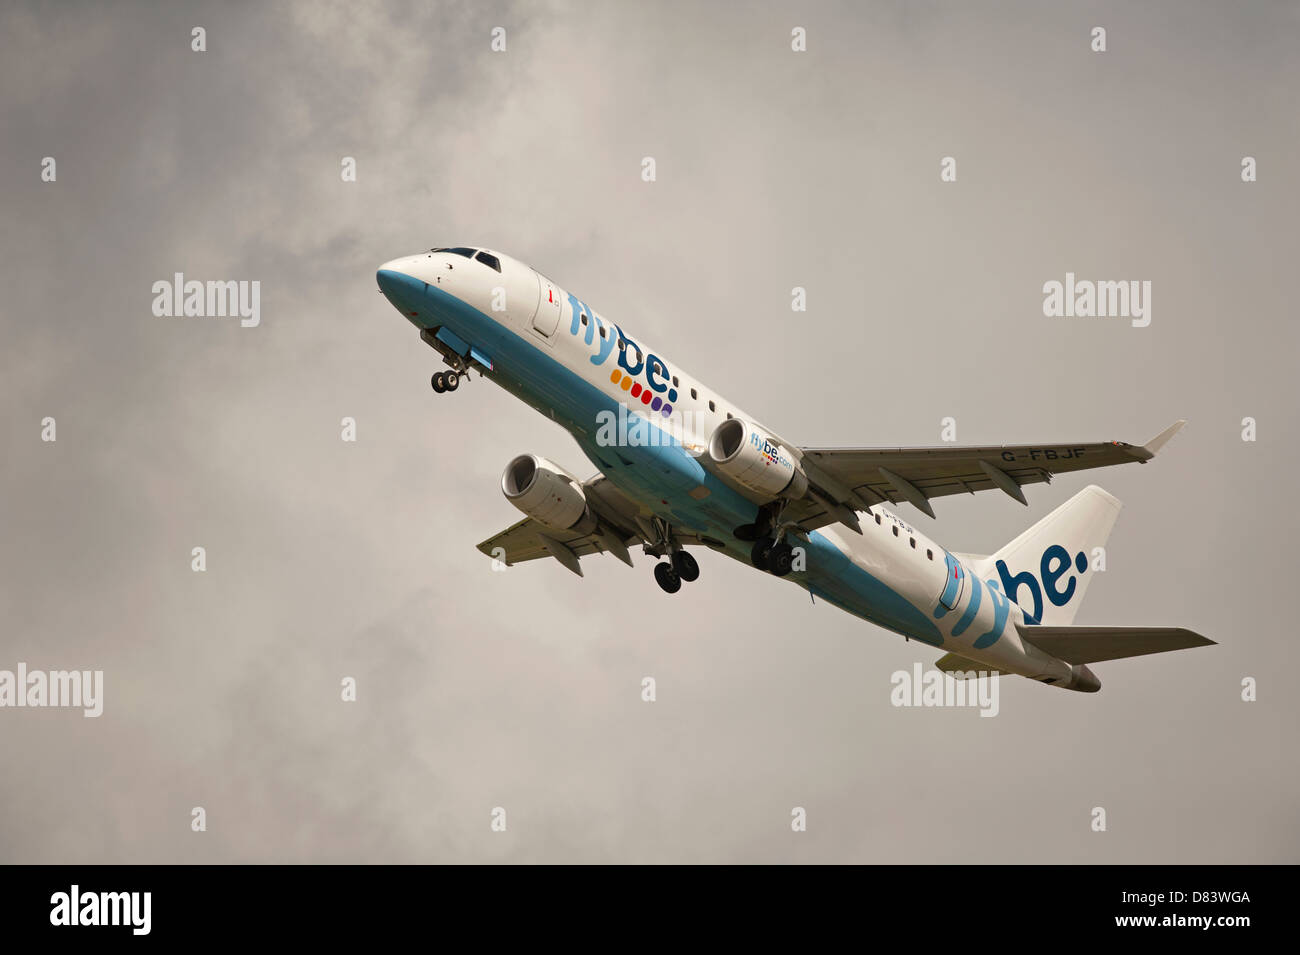 Twin engined Embraer ERJ-190-2000-195LR Flybe Civil Airliner departing Inverness  Airport Highland Scotland  SCO Stock Photo